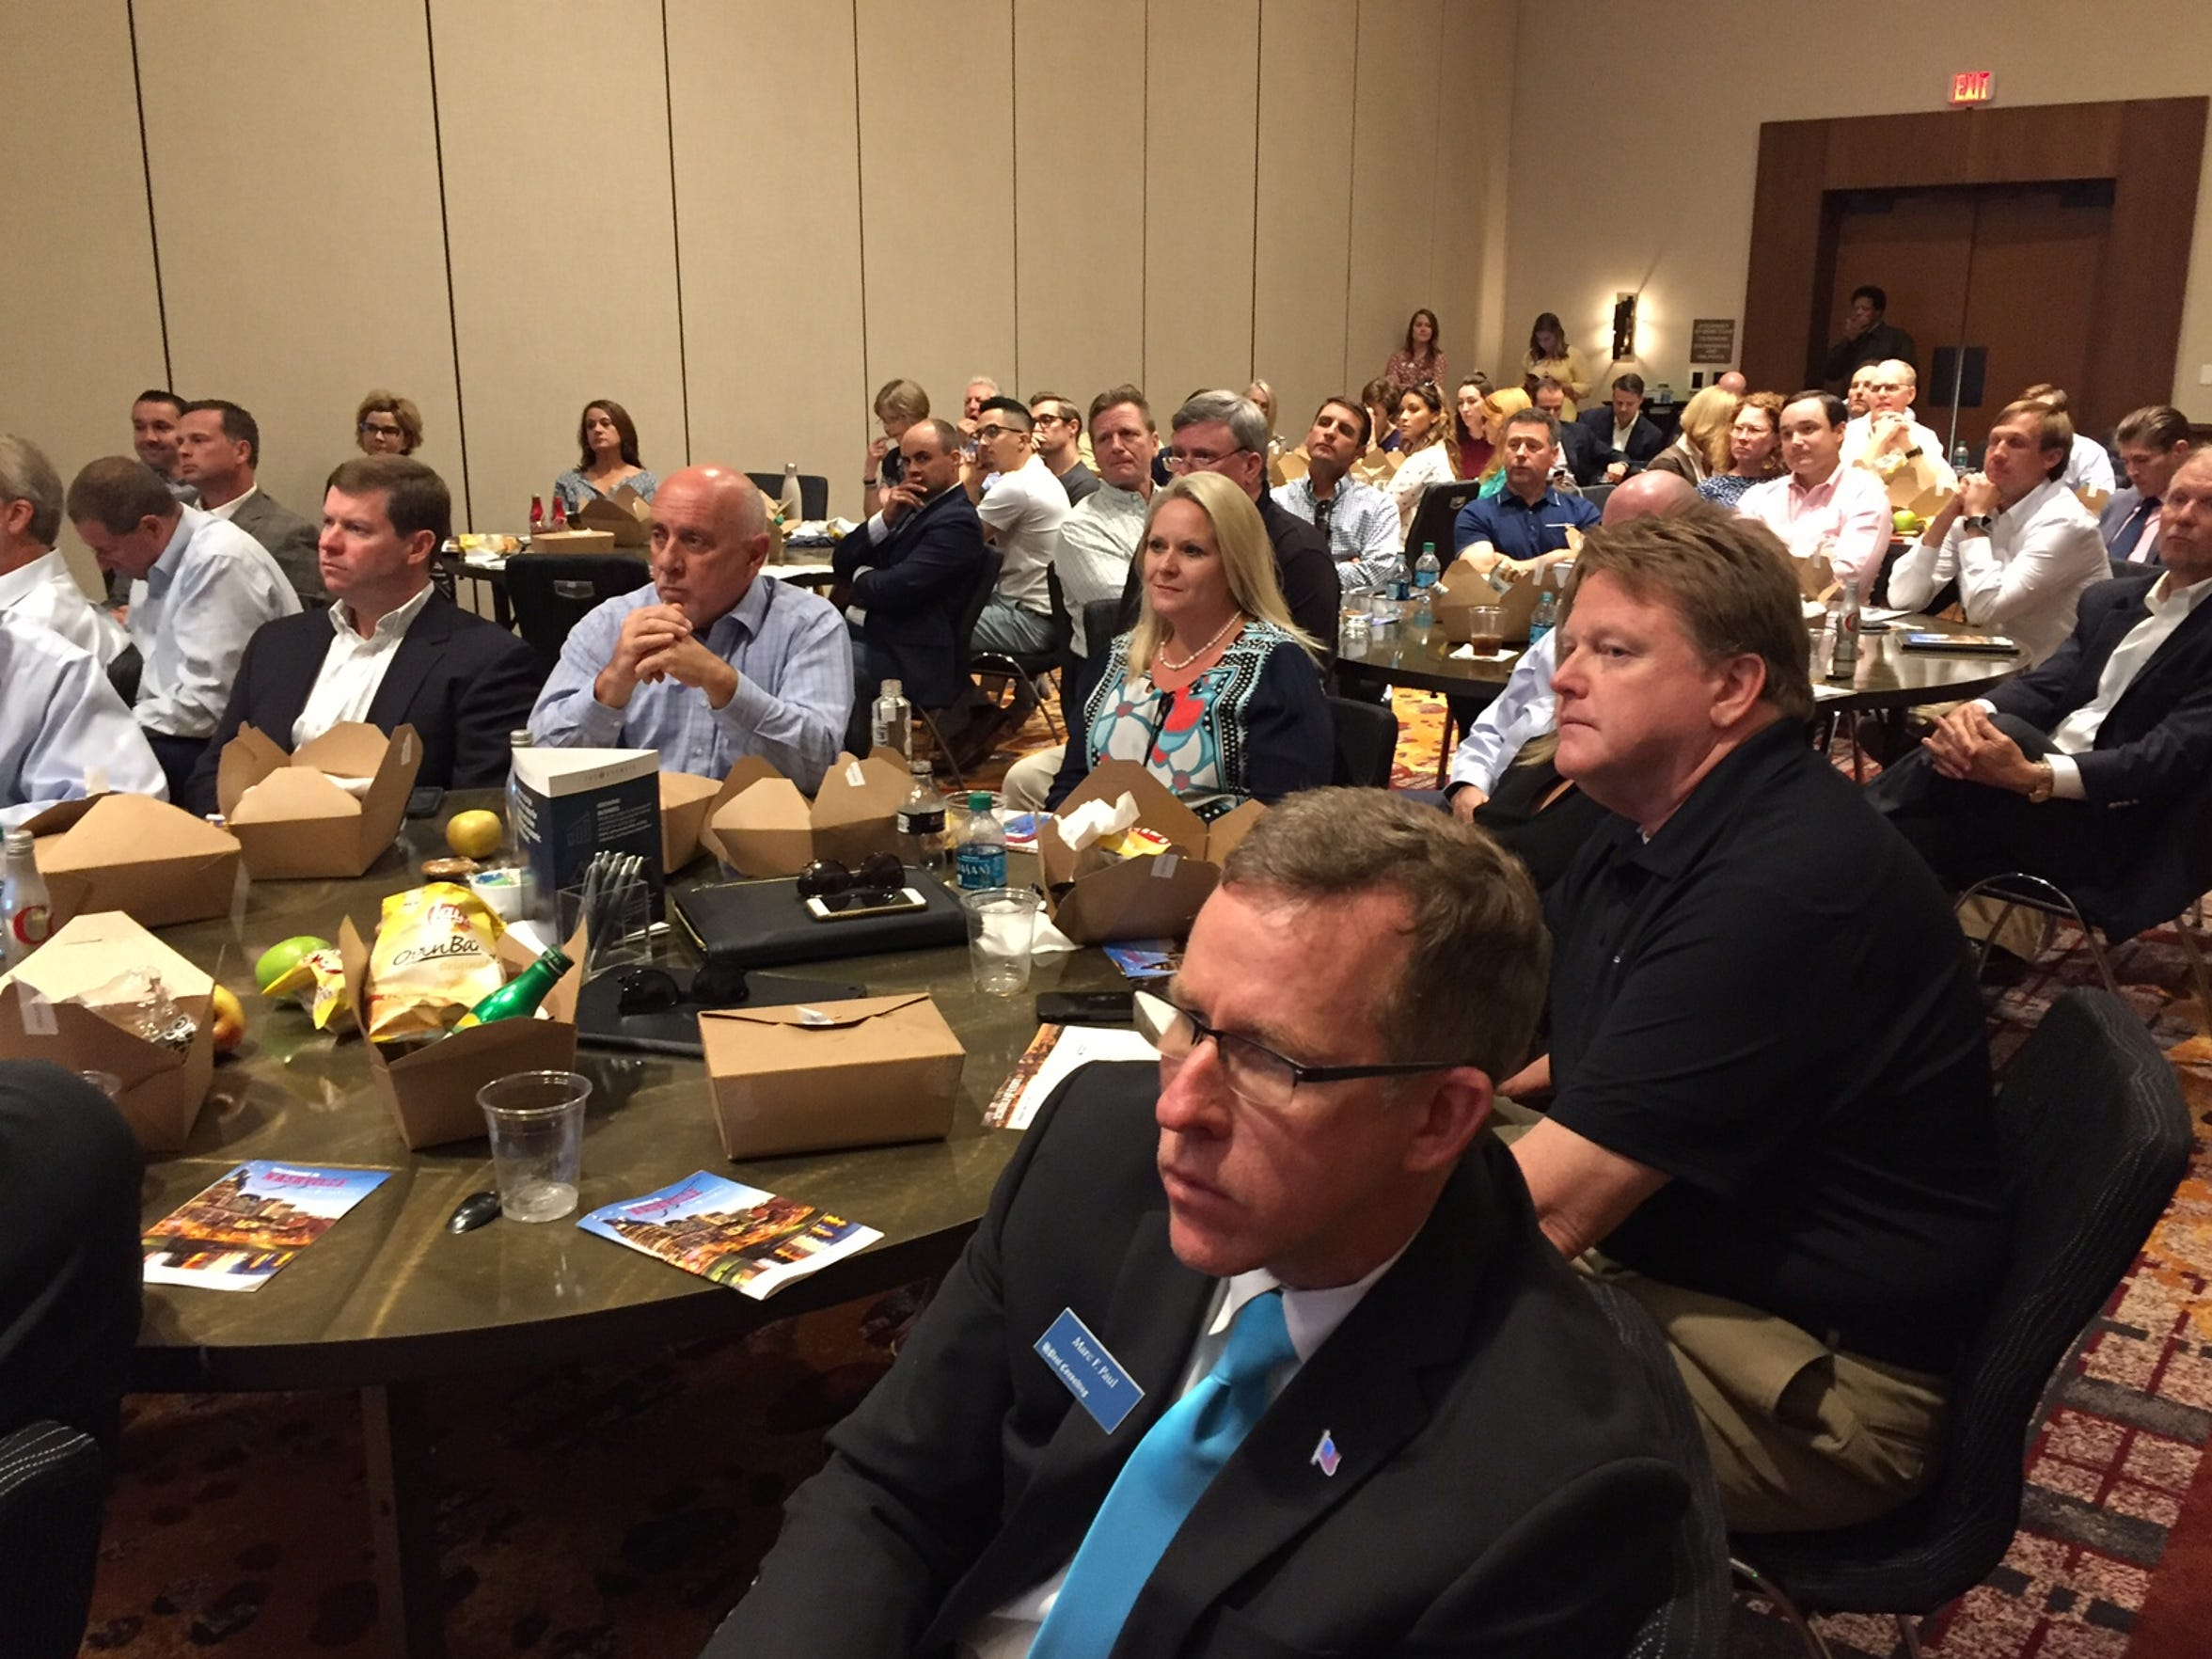 More than 80 of Tallahassee's business, government and economic leaders traveled to Nashville, Tennessee, during an inter-city recon trip hosted by the Tallahassee Chamber of Commerce.